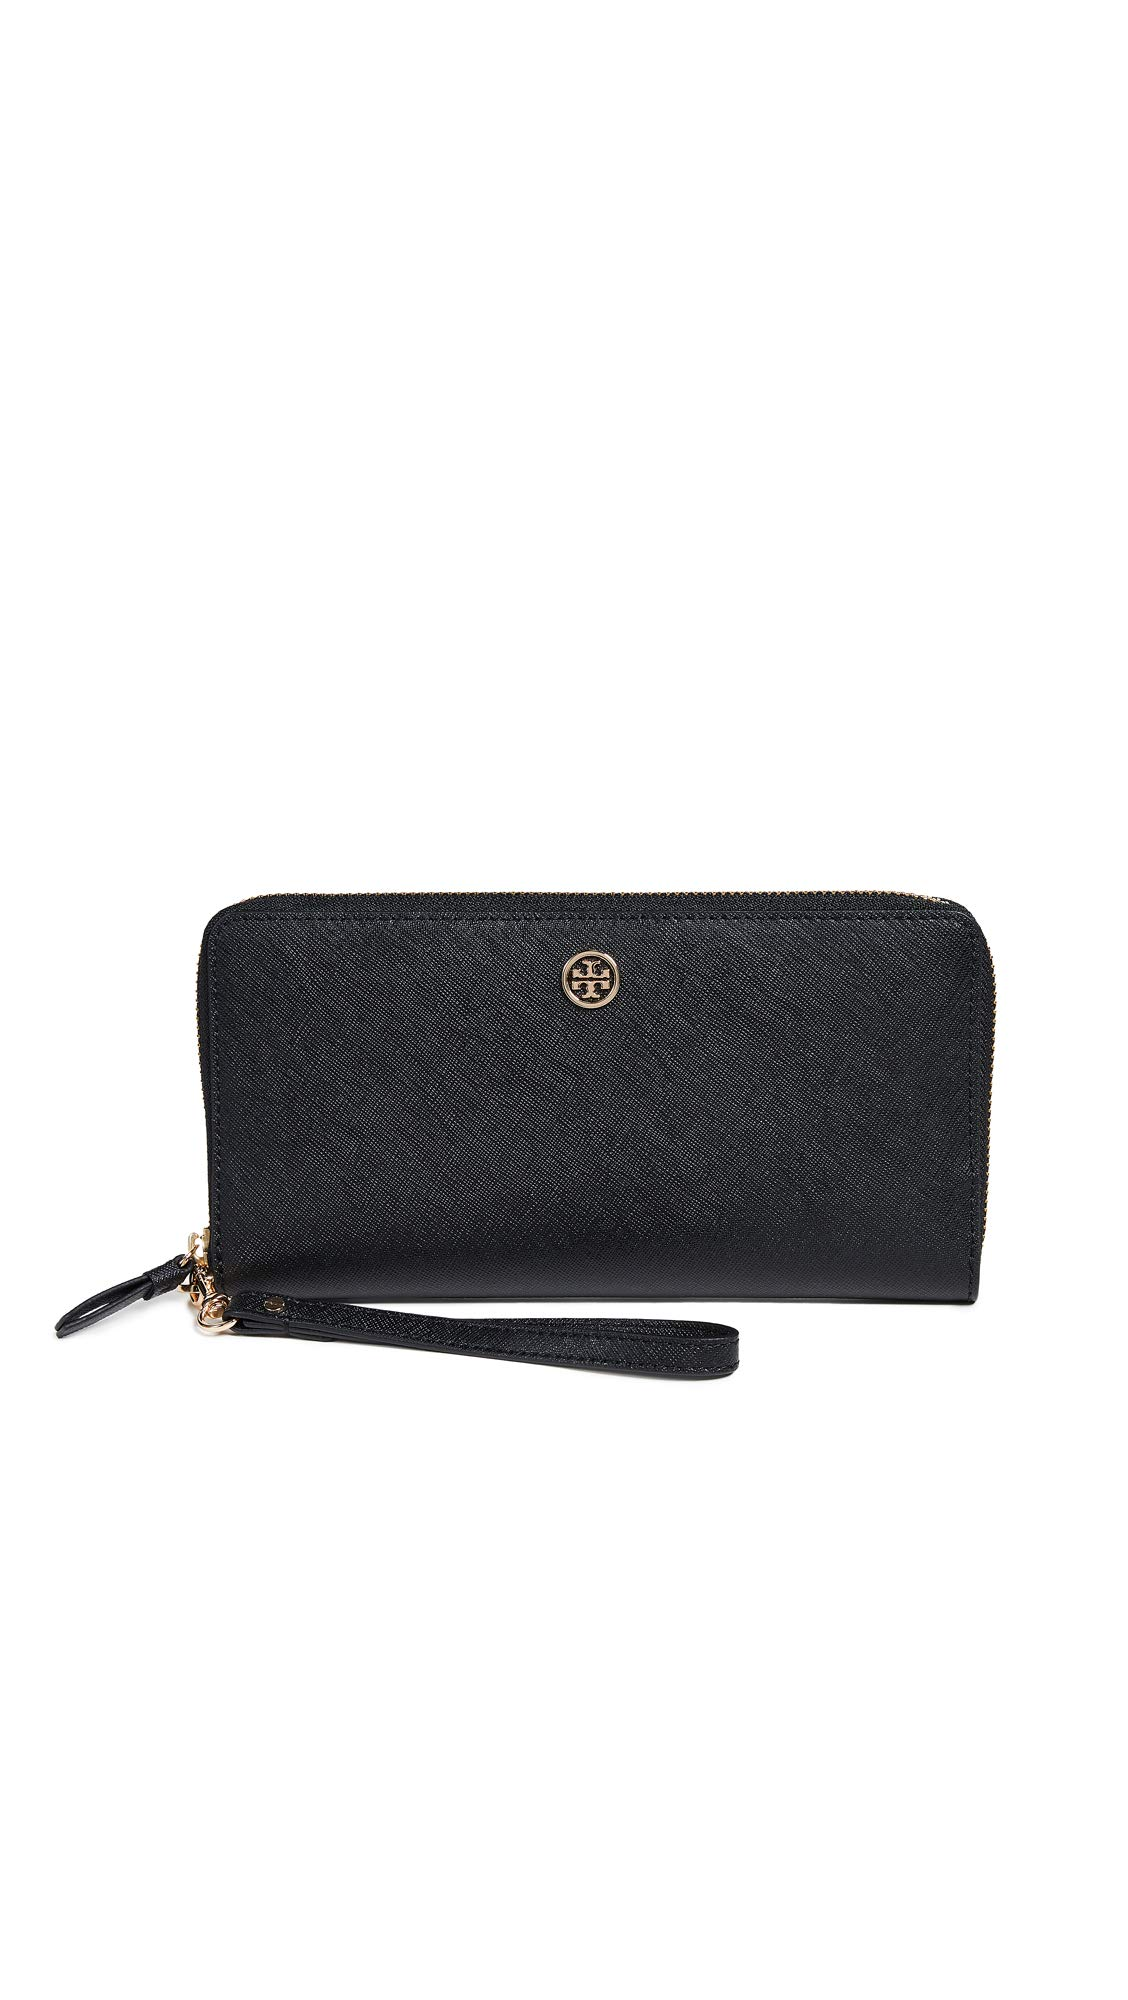 Tory Burch Women's Robinson Passport Continental Wallet, Black/Royal Navy, One Size by Tory Burch